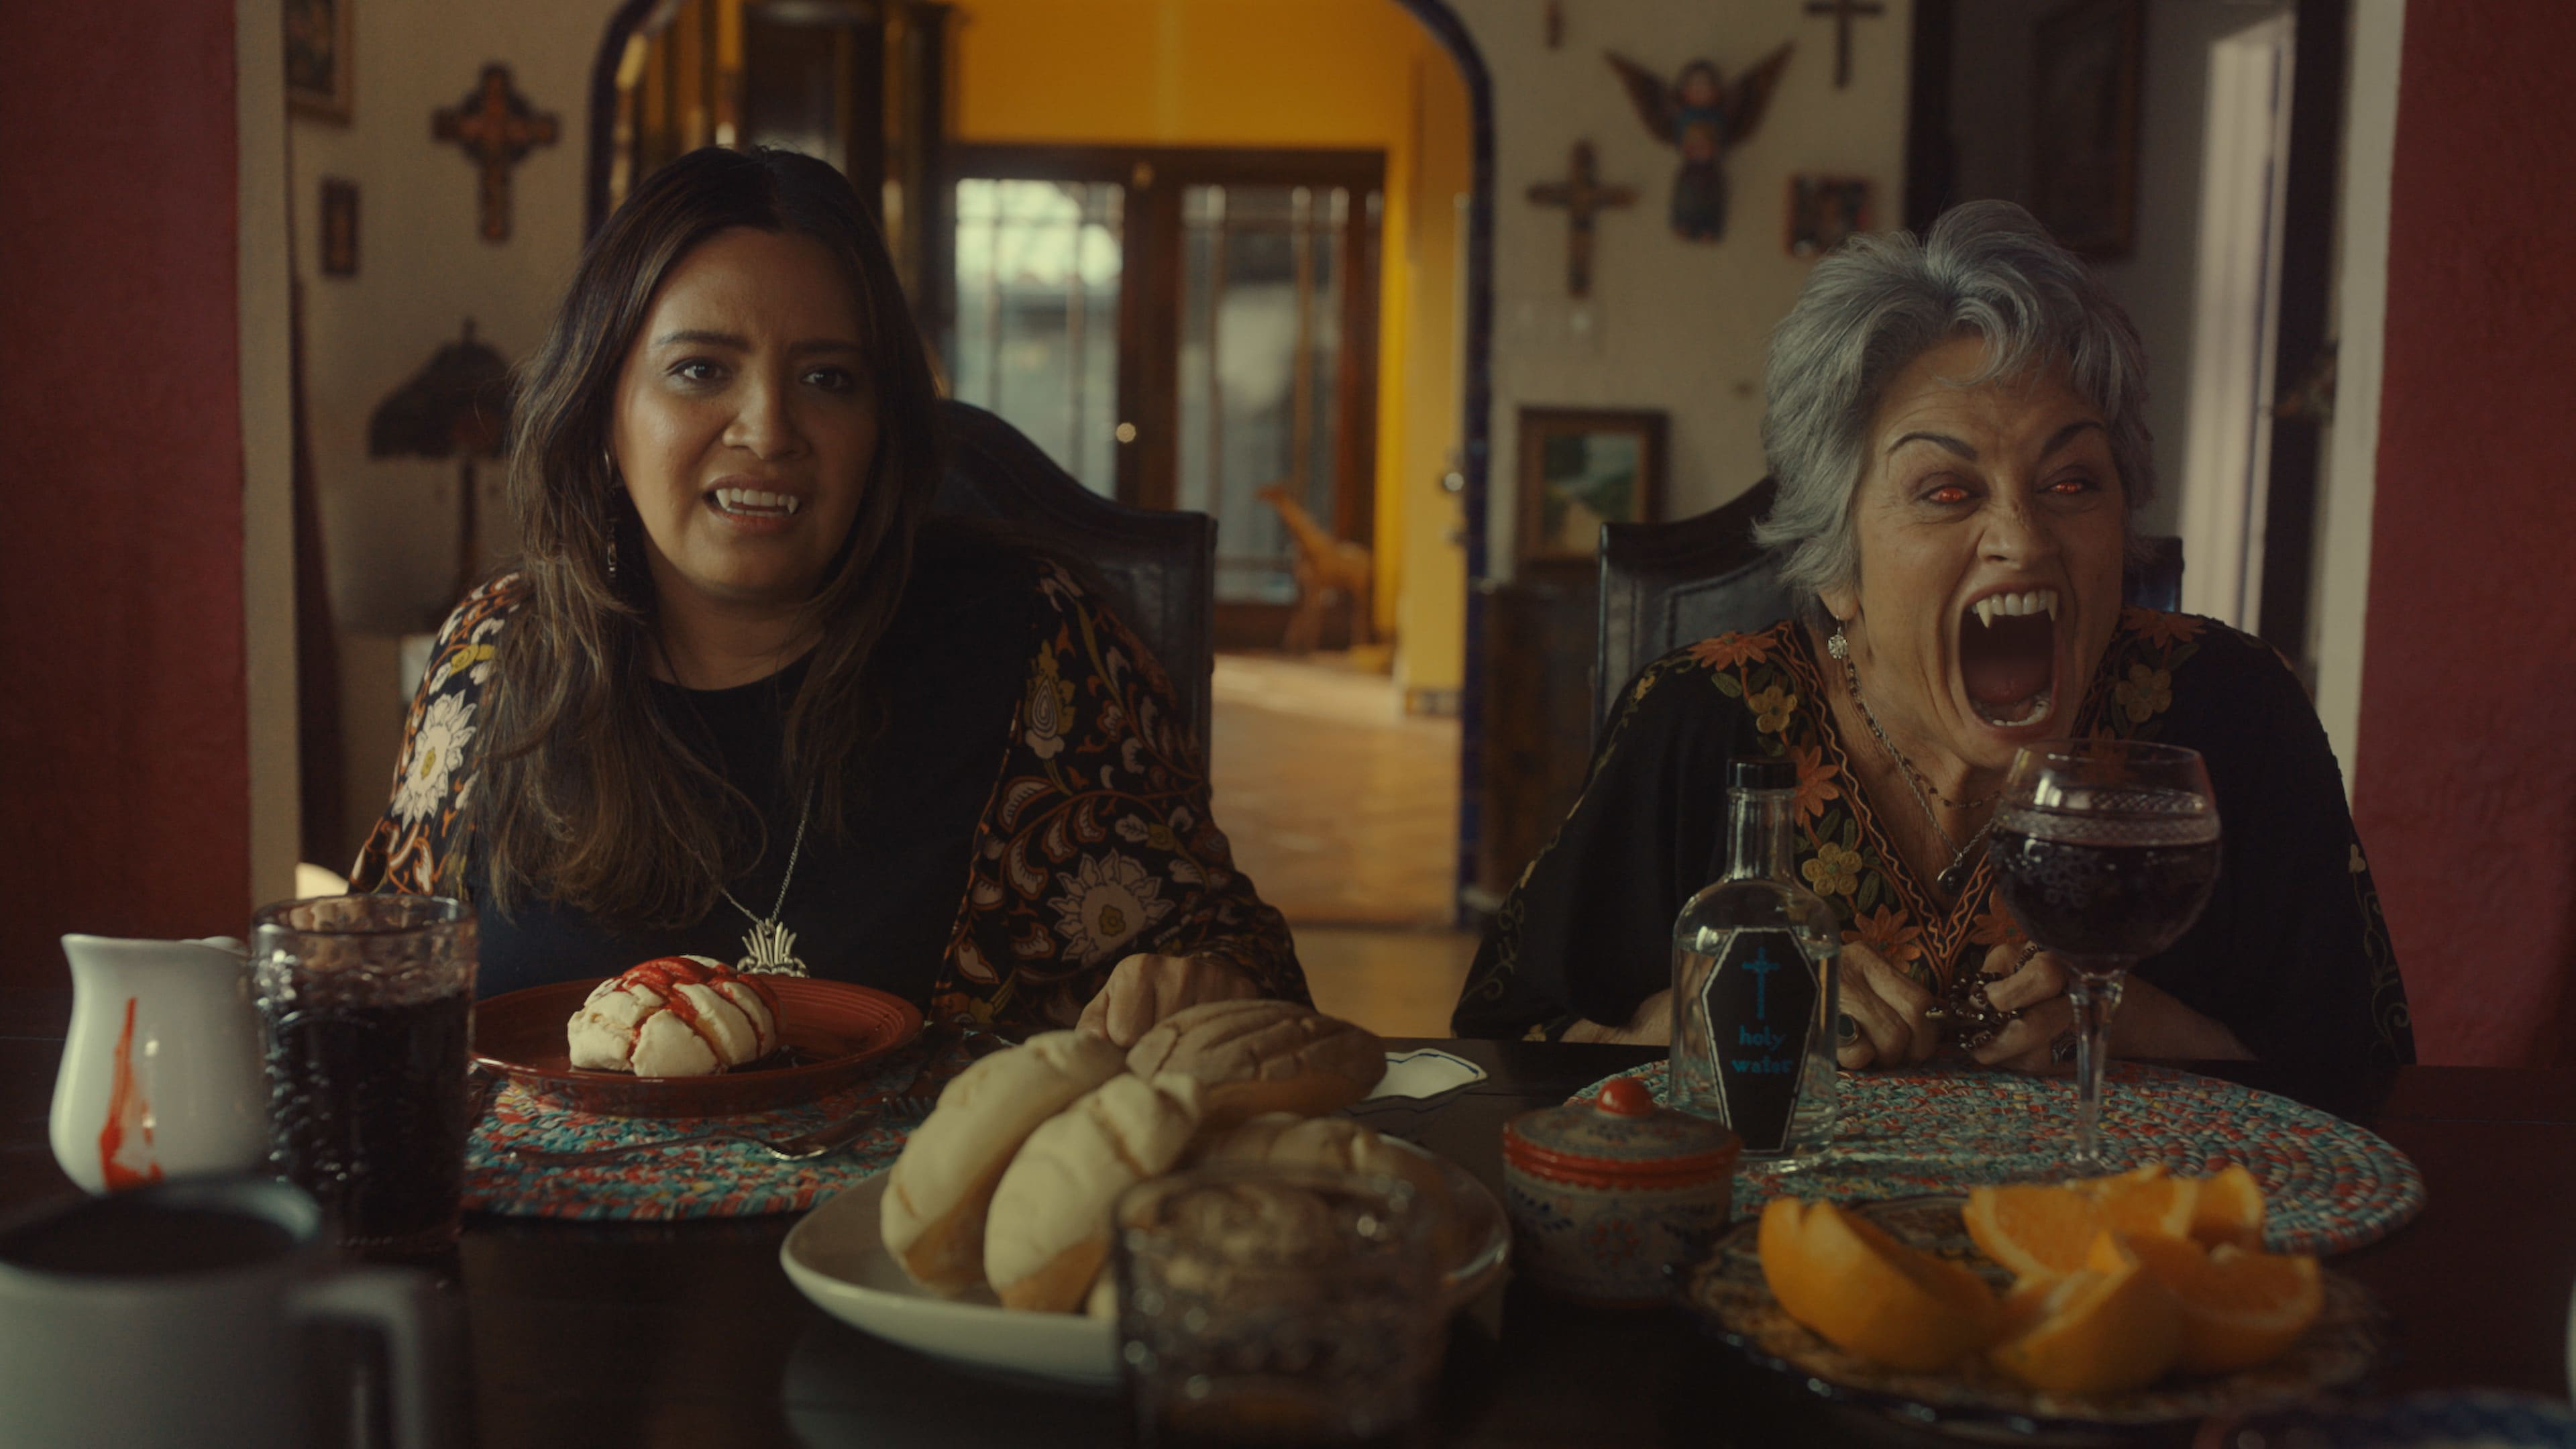 """(L-R): Cristela Alonzo as Lupe Garcia and Terri Hoyos as Cuca Garcia in Disney's """"LAUNCHPAD"""" Season One short, """"GROWING FANGS,"""" Written and Directedby Ann Marie Pace. Photo courtesy of Disney. © 2021 Disney Enterprises, Inc. All Rights Reserved."""